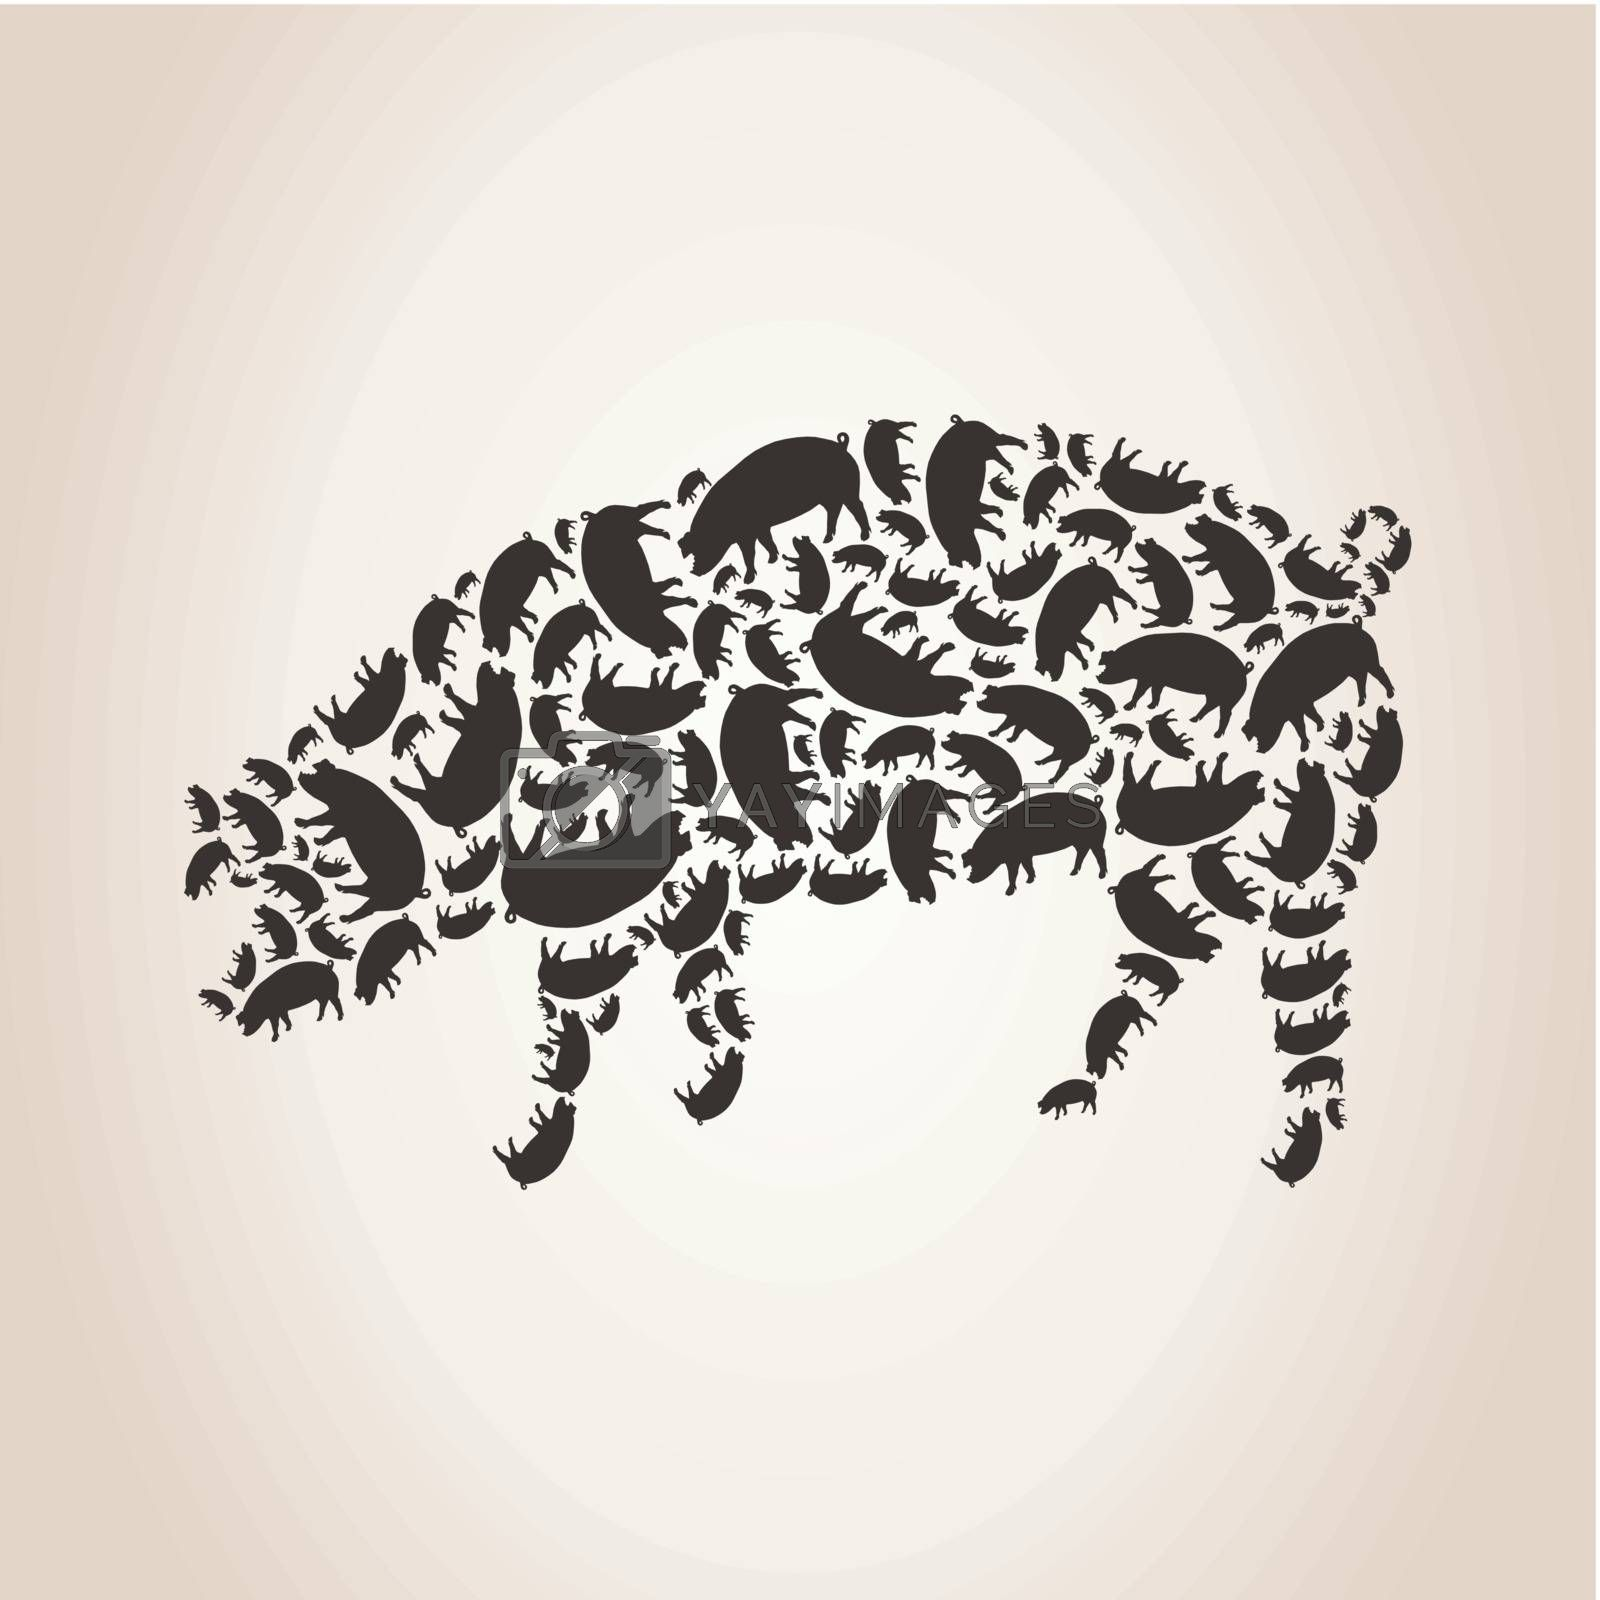 Pig made of pigs. A vector illustration